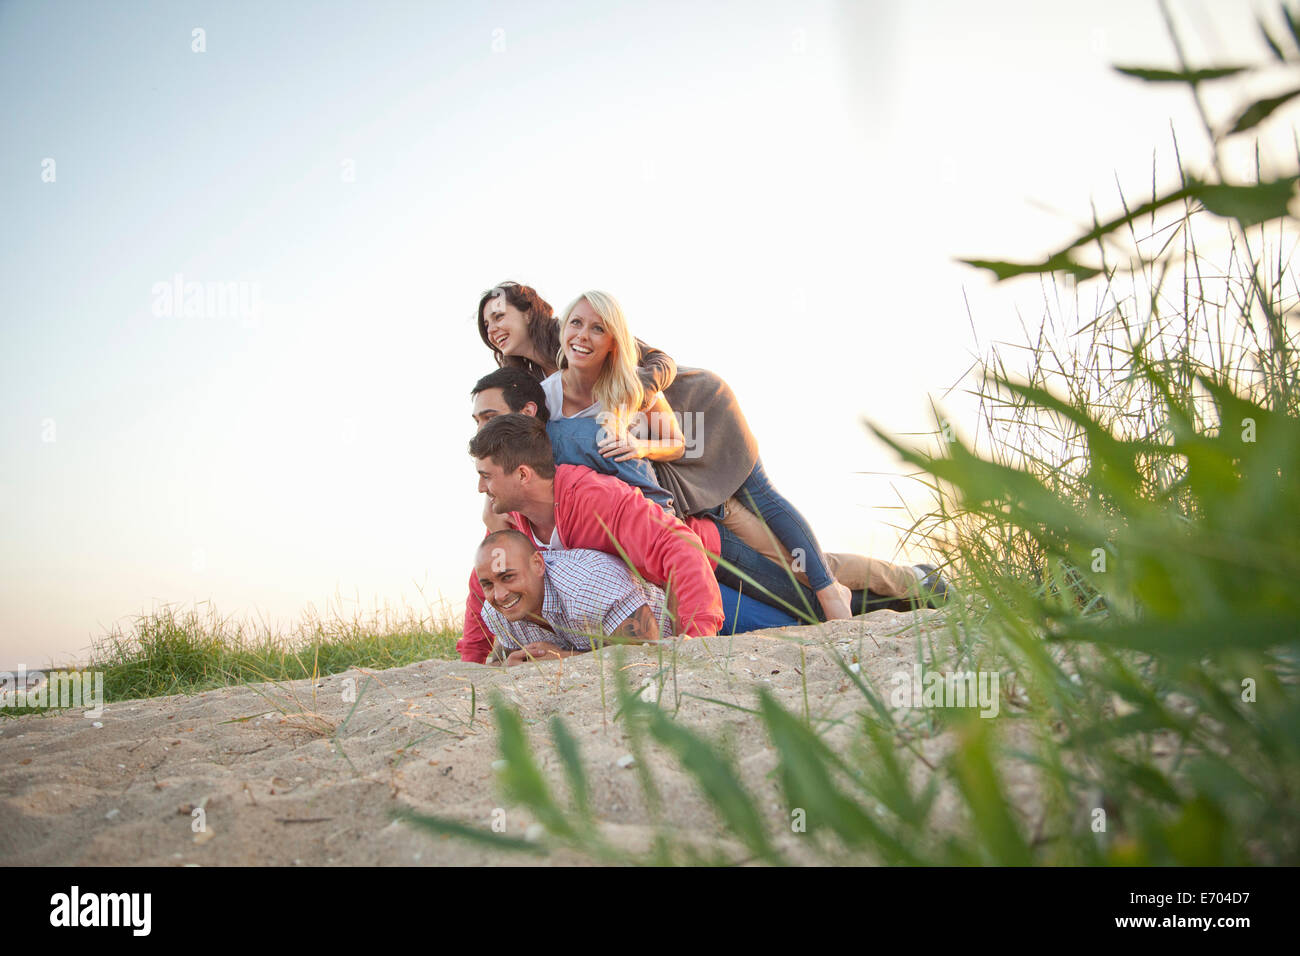 Group of friends making human pile on beach Stock Photo